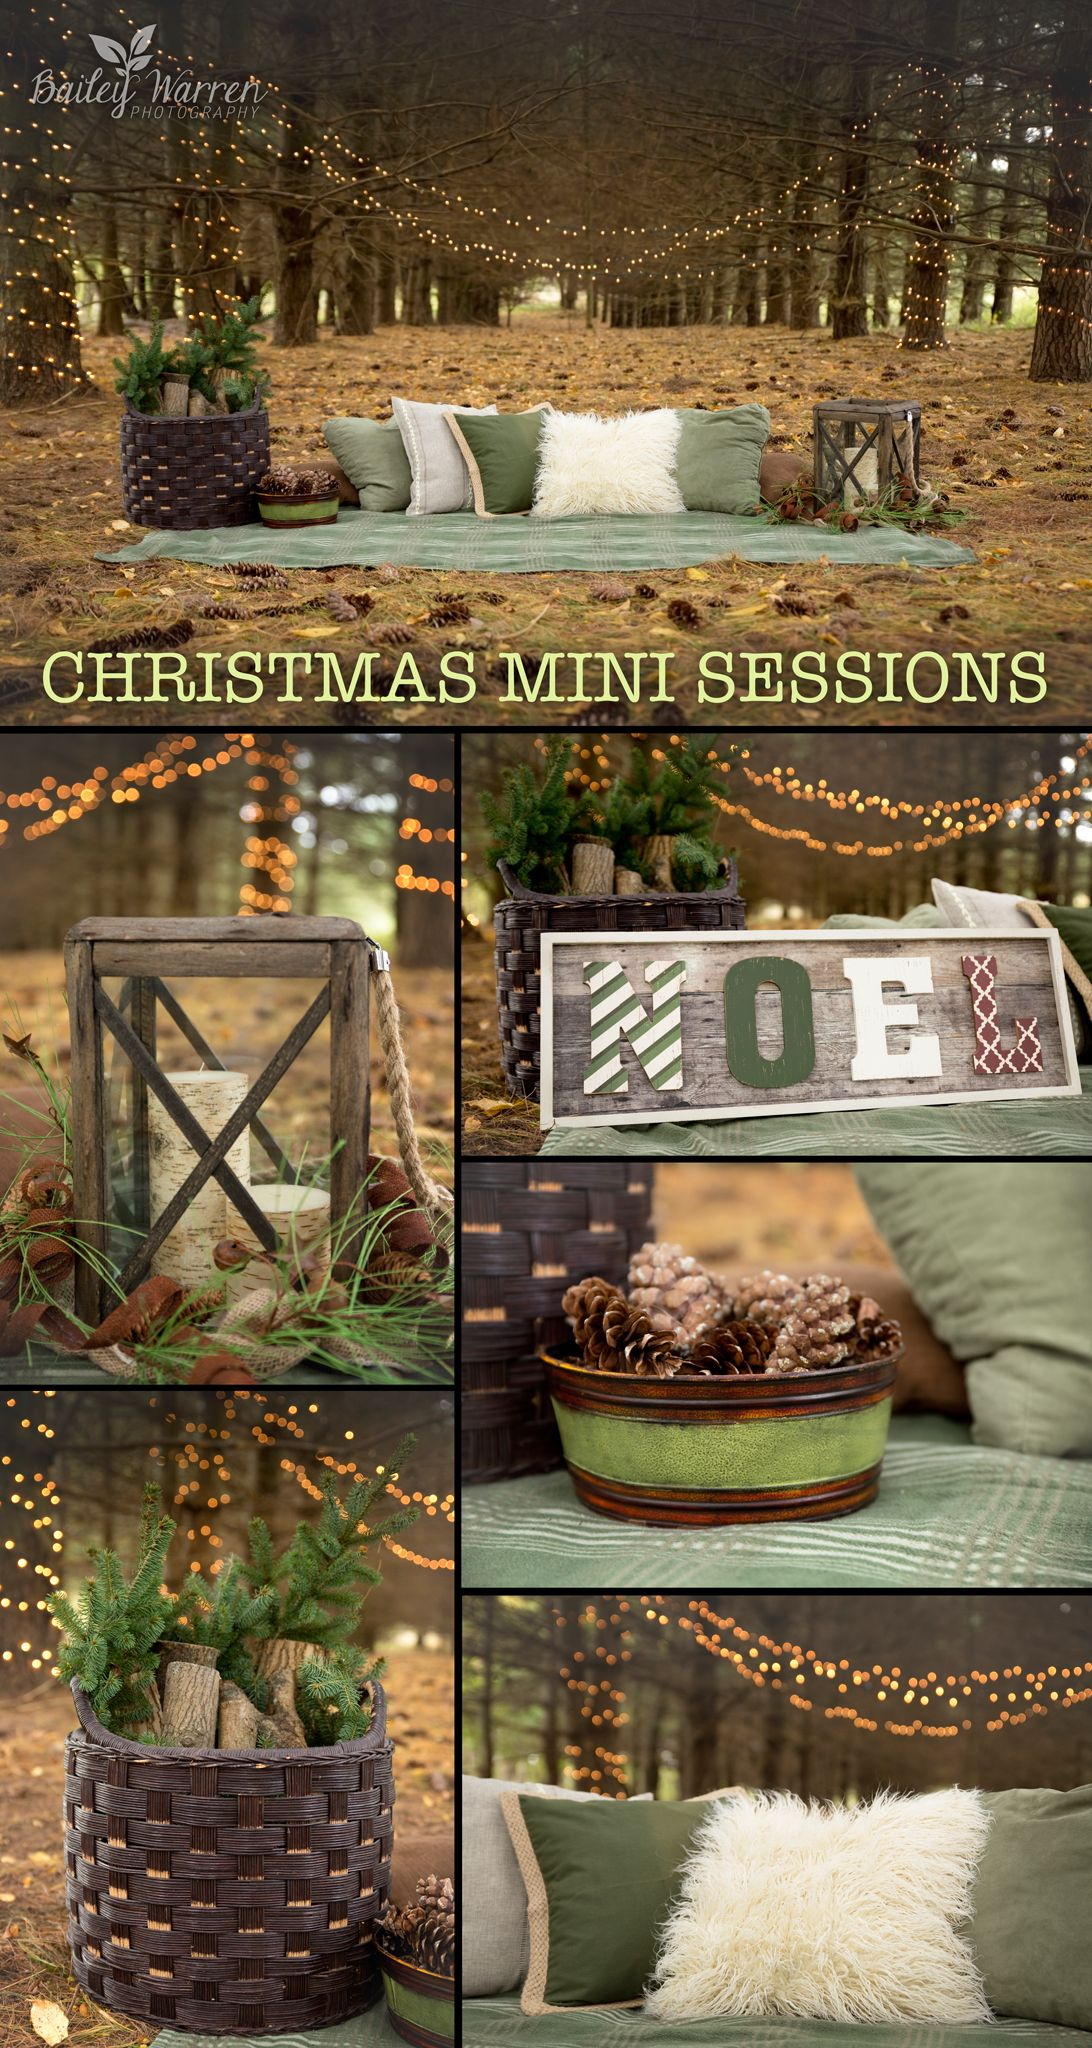 Holiday and Christmas Minis graphy Sessions in the woods